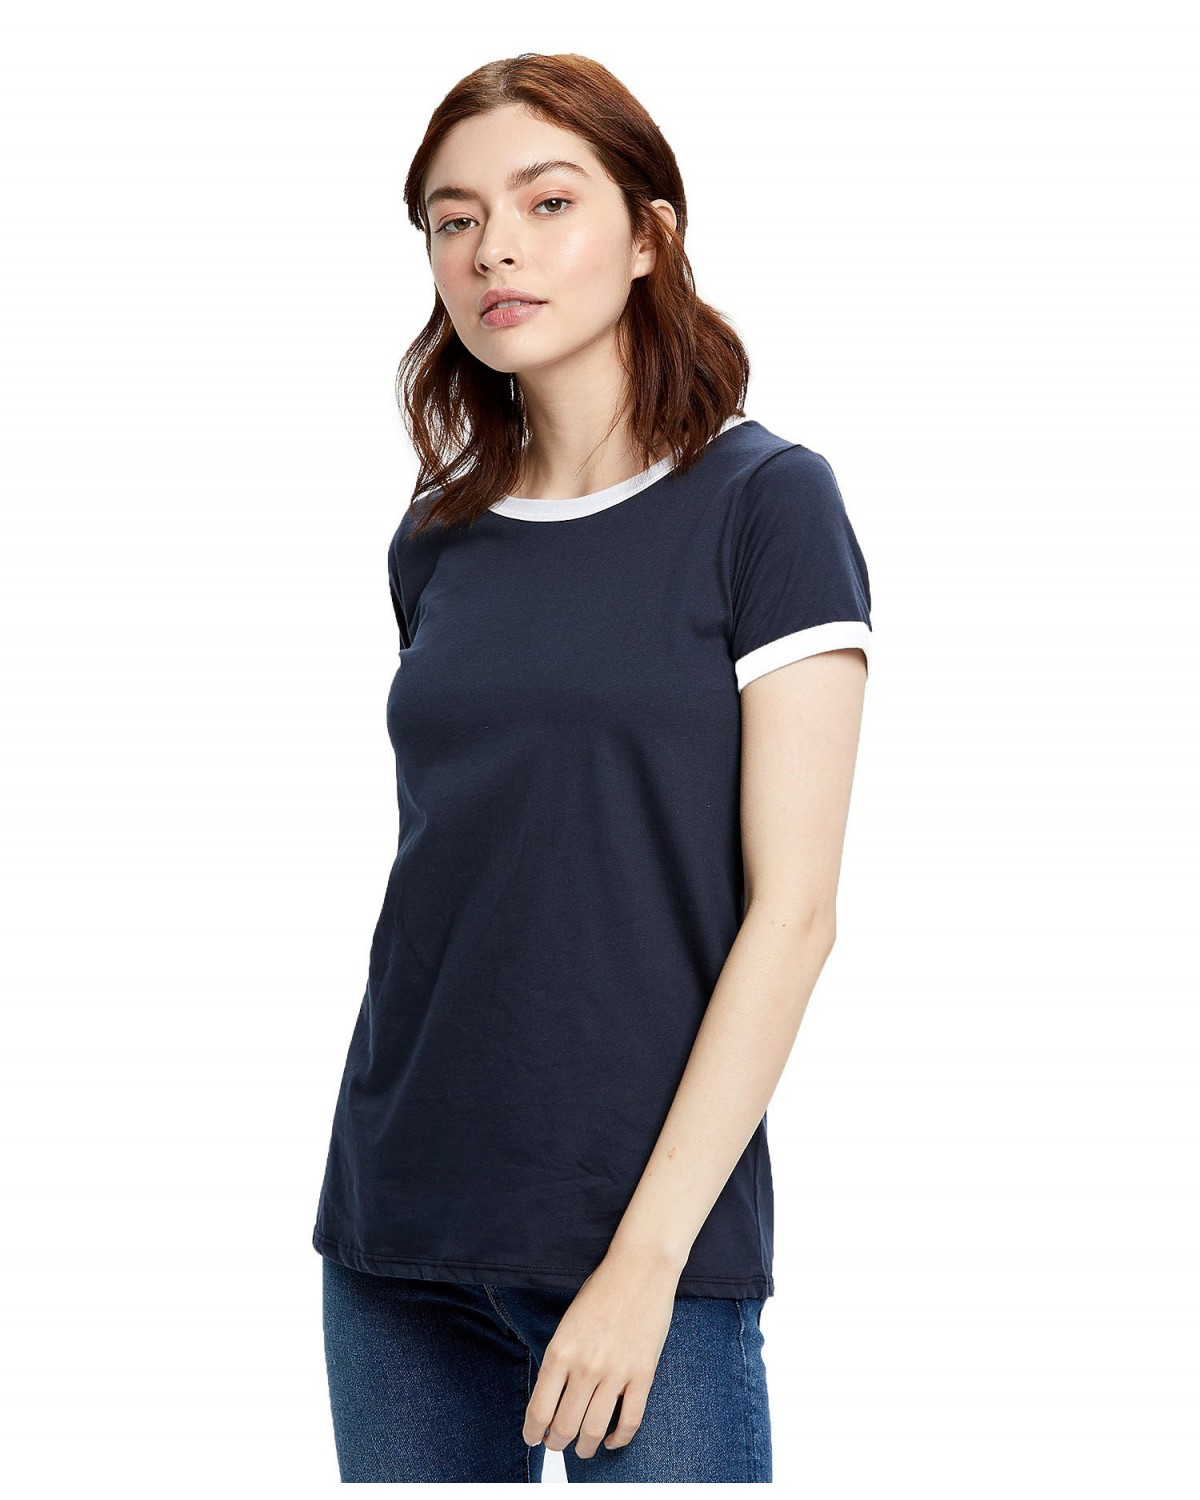 AAHVT316W American Apparel